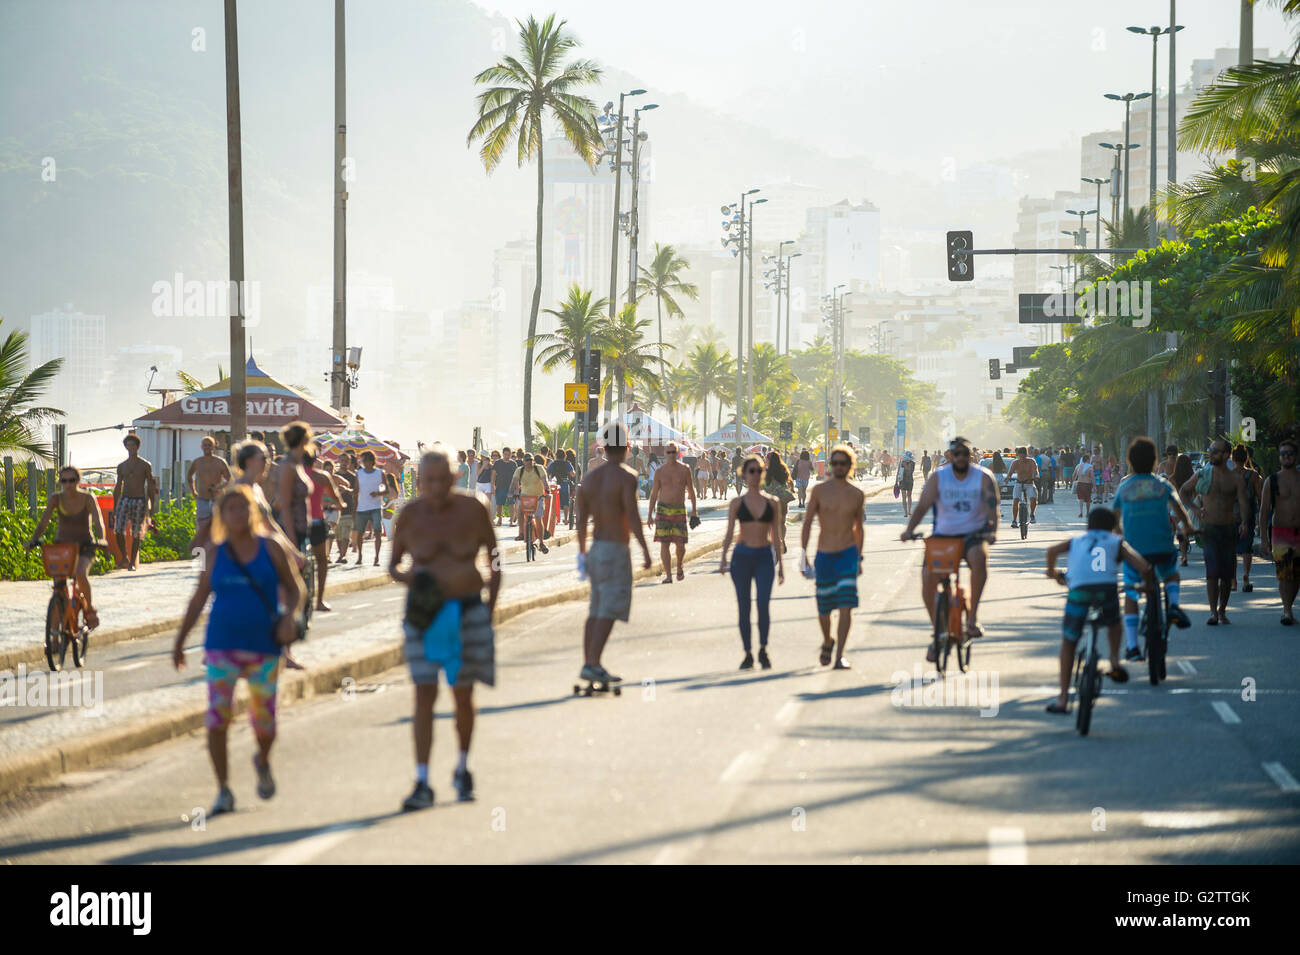 RIO DE JANEIRO - MARCH 6, 2016: Pedestrians share the car-free beachfront Avenida Vieira Souto street with skaters - Stock Image